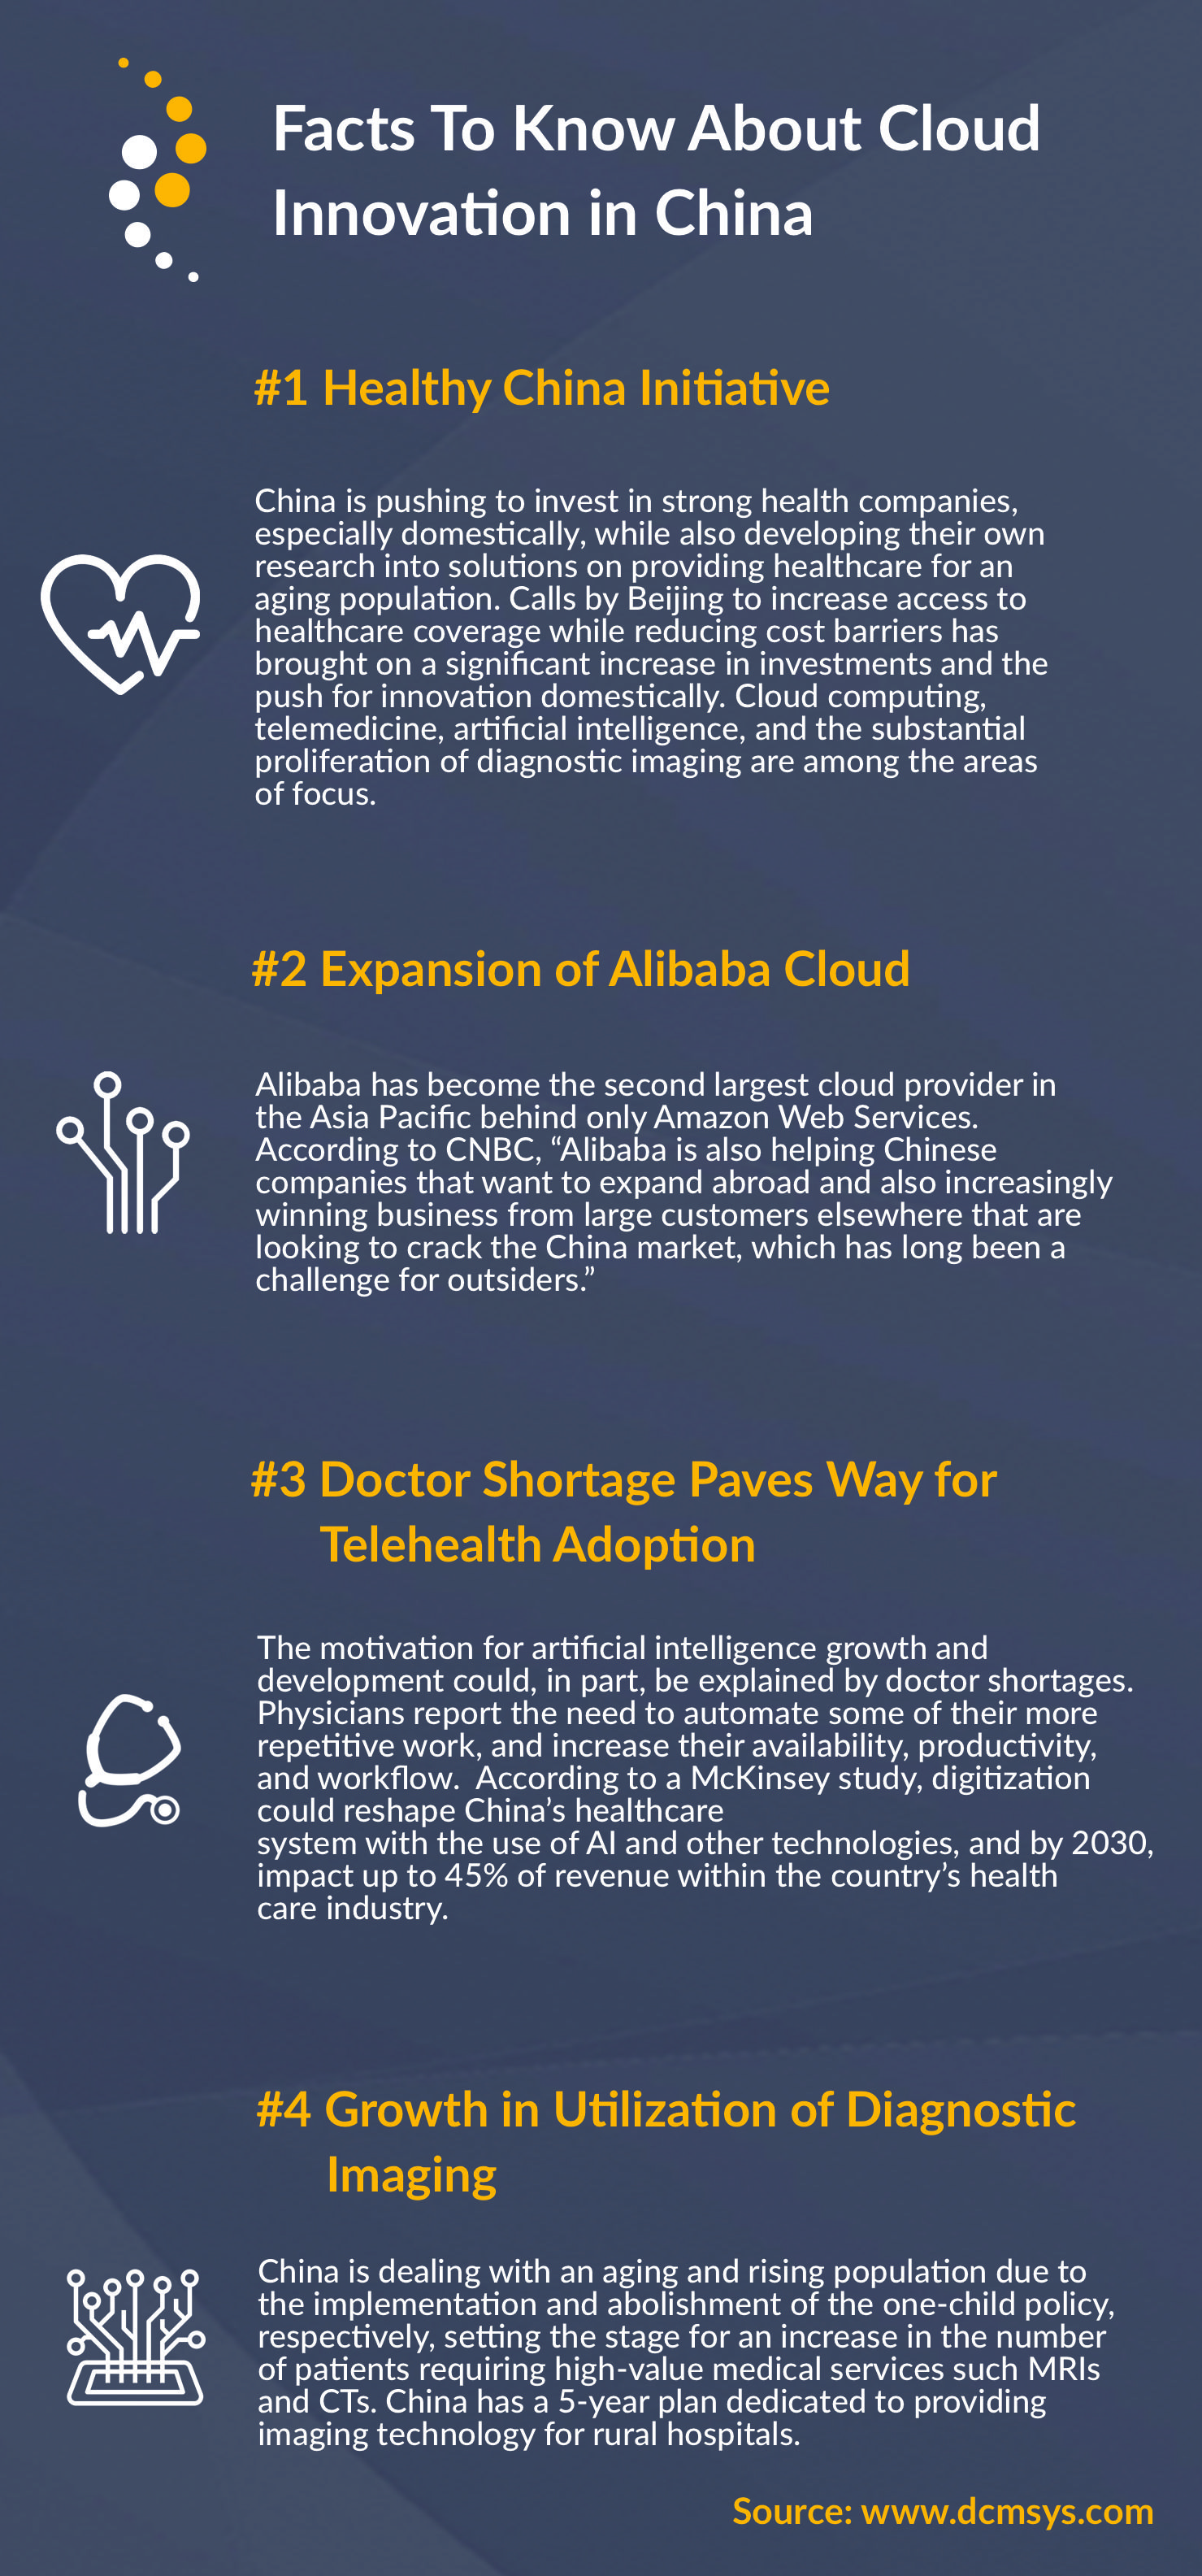 Facts To Know About Cloud Innovation In China Solutions Cloud Infrastructure Business Continuity